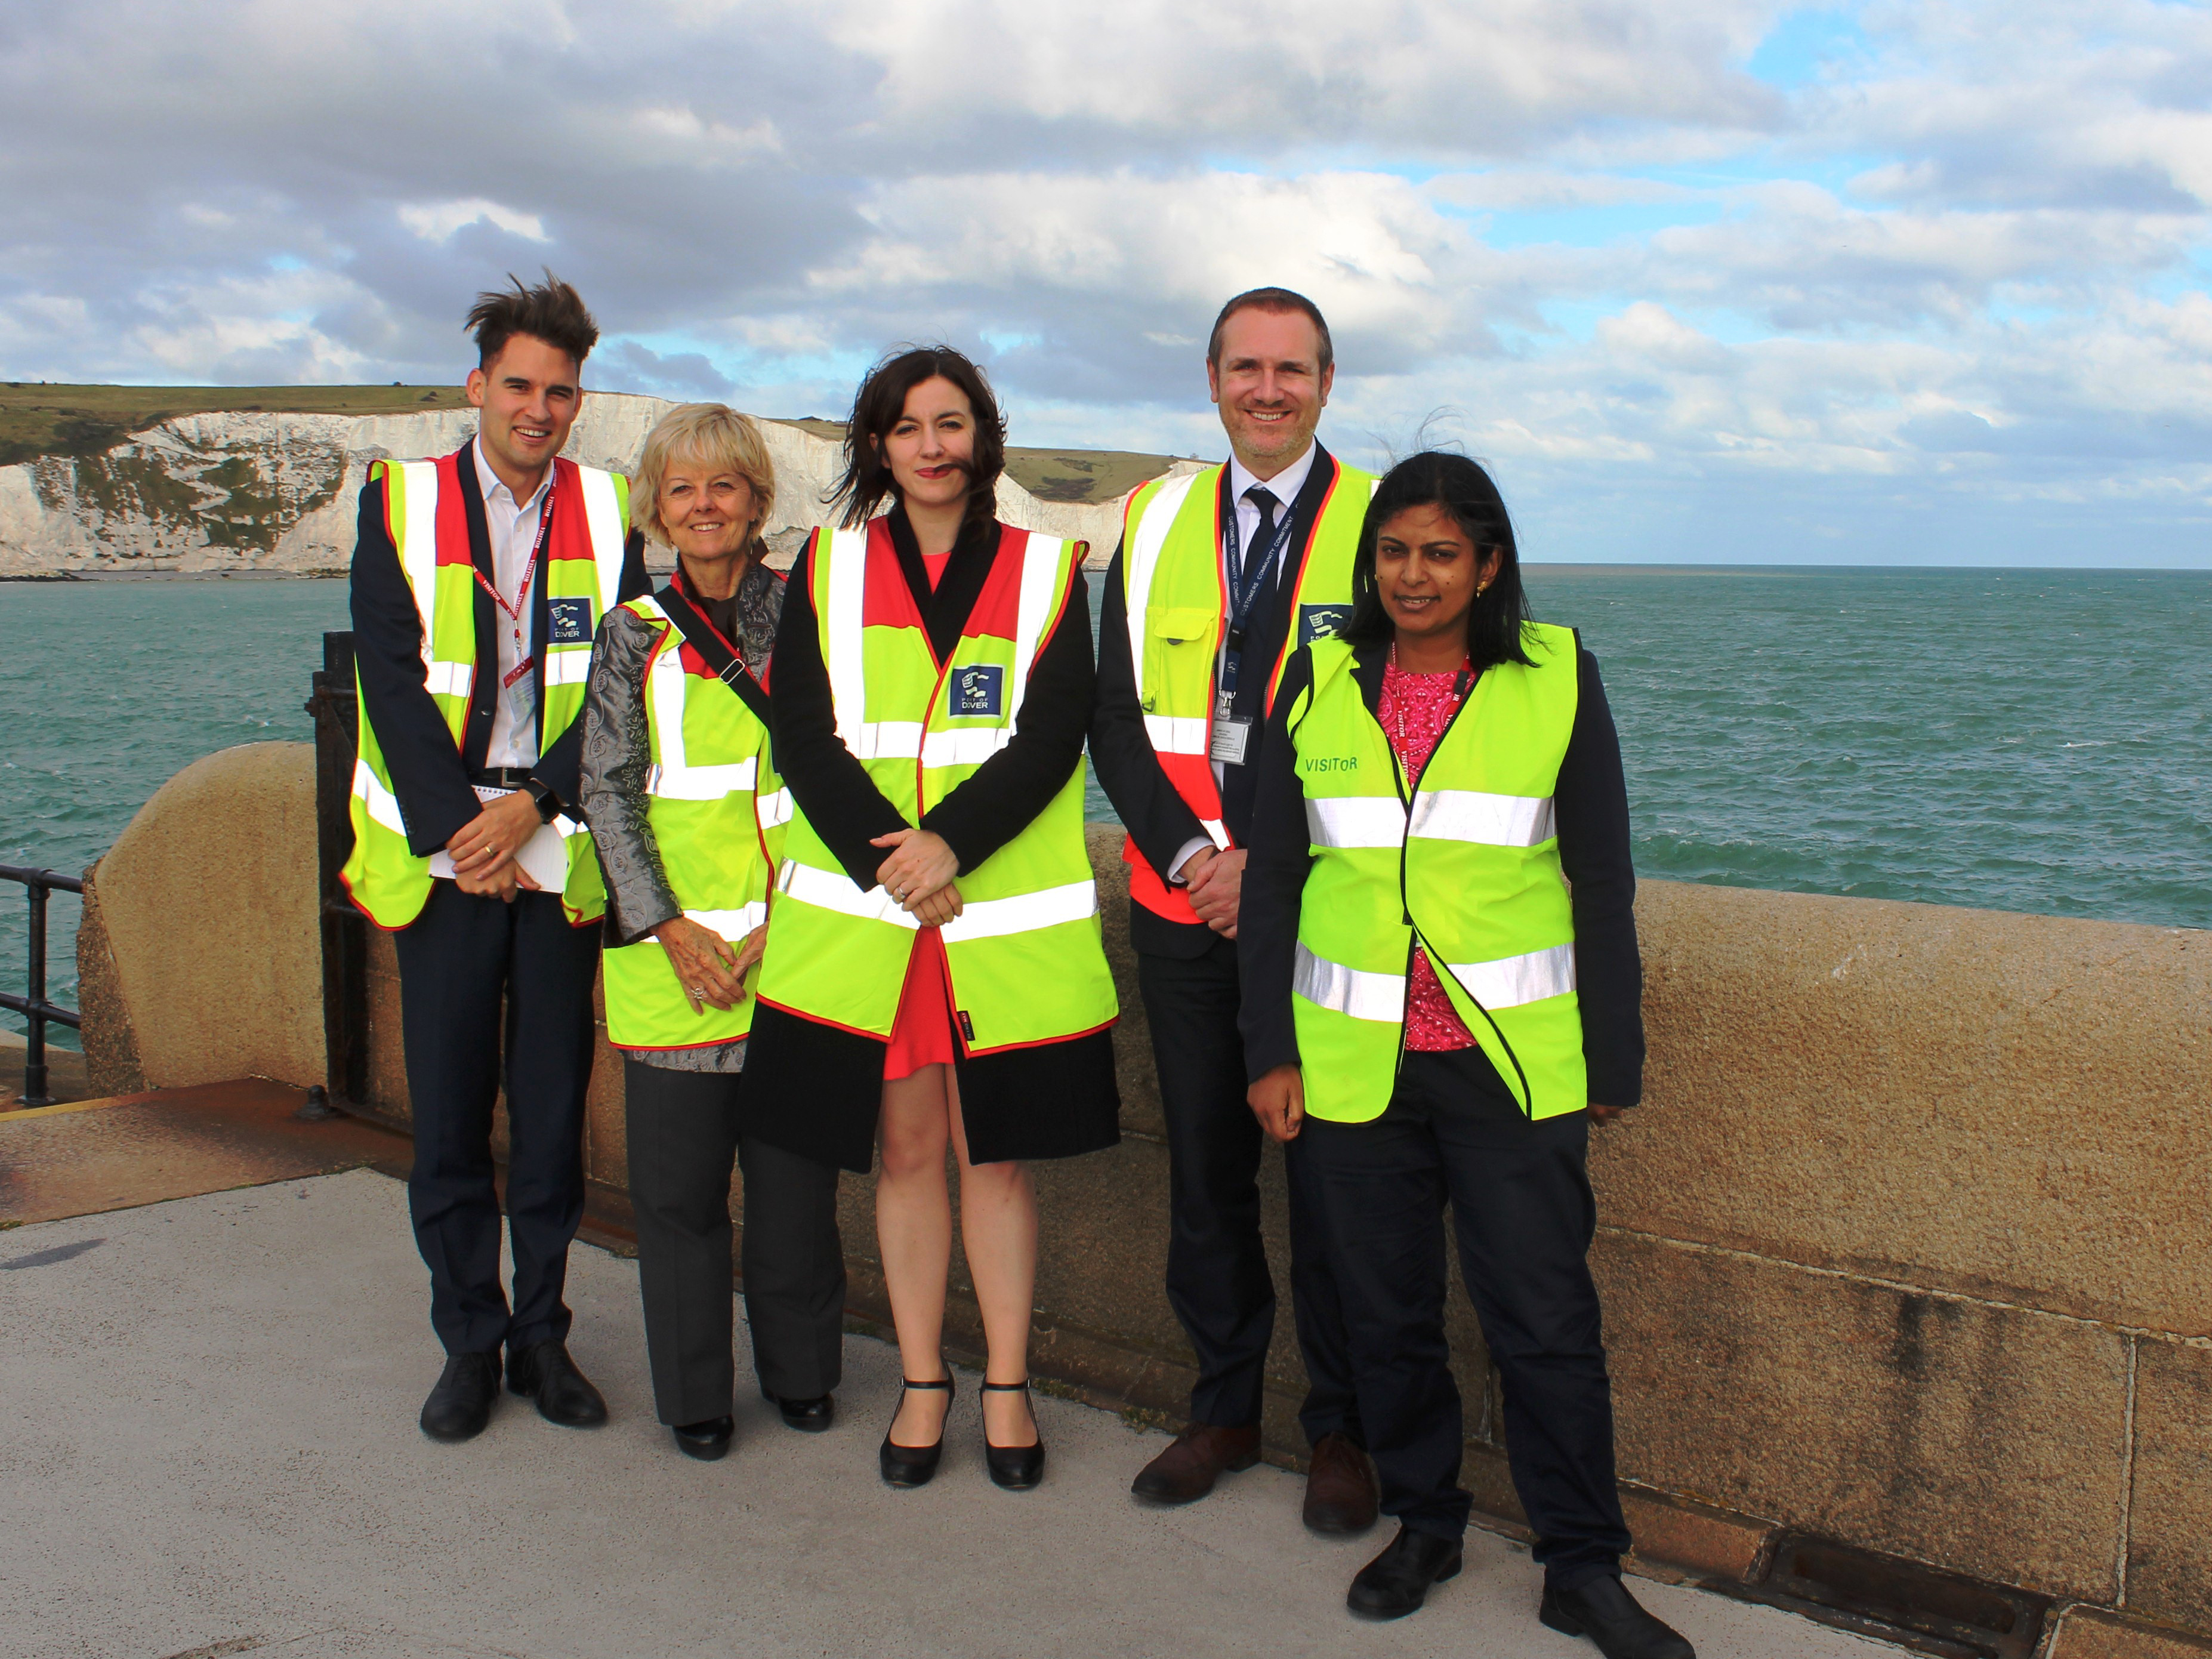 Ferried away: parliamentarians visit the Port of Dover